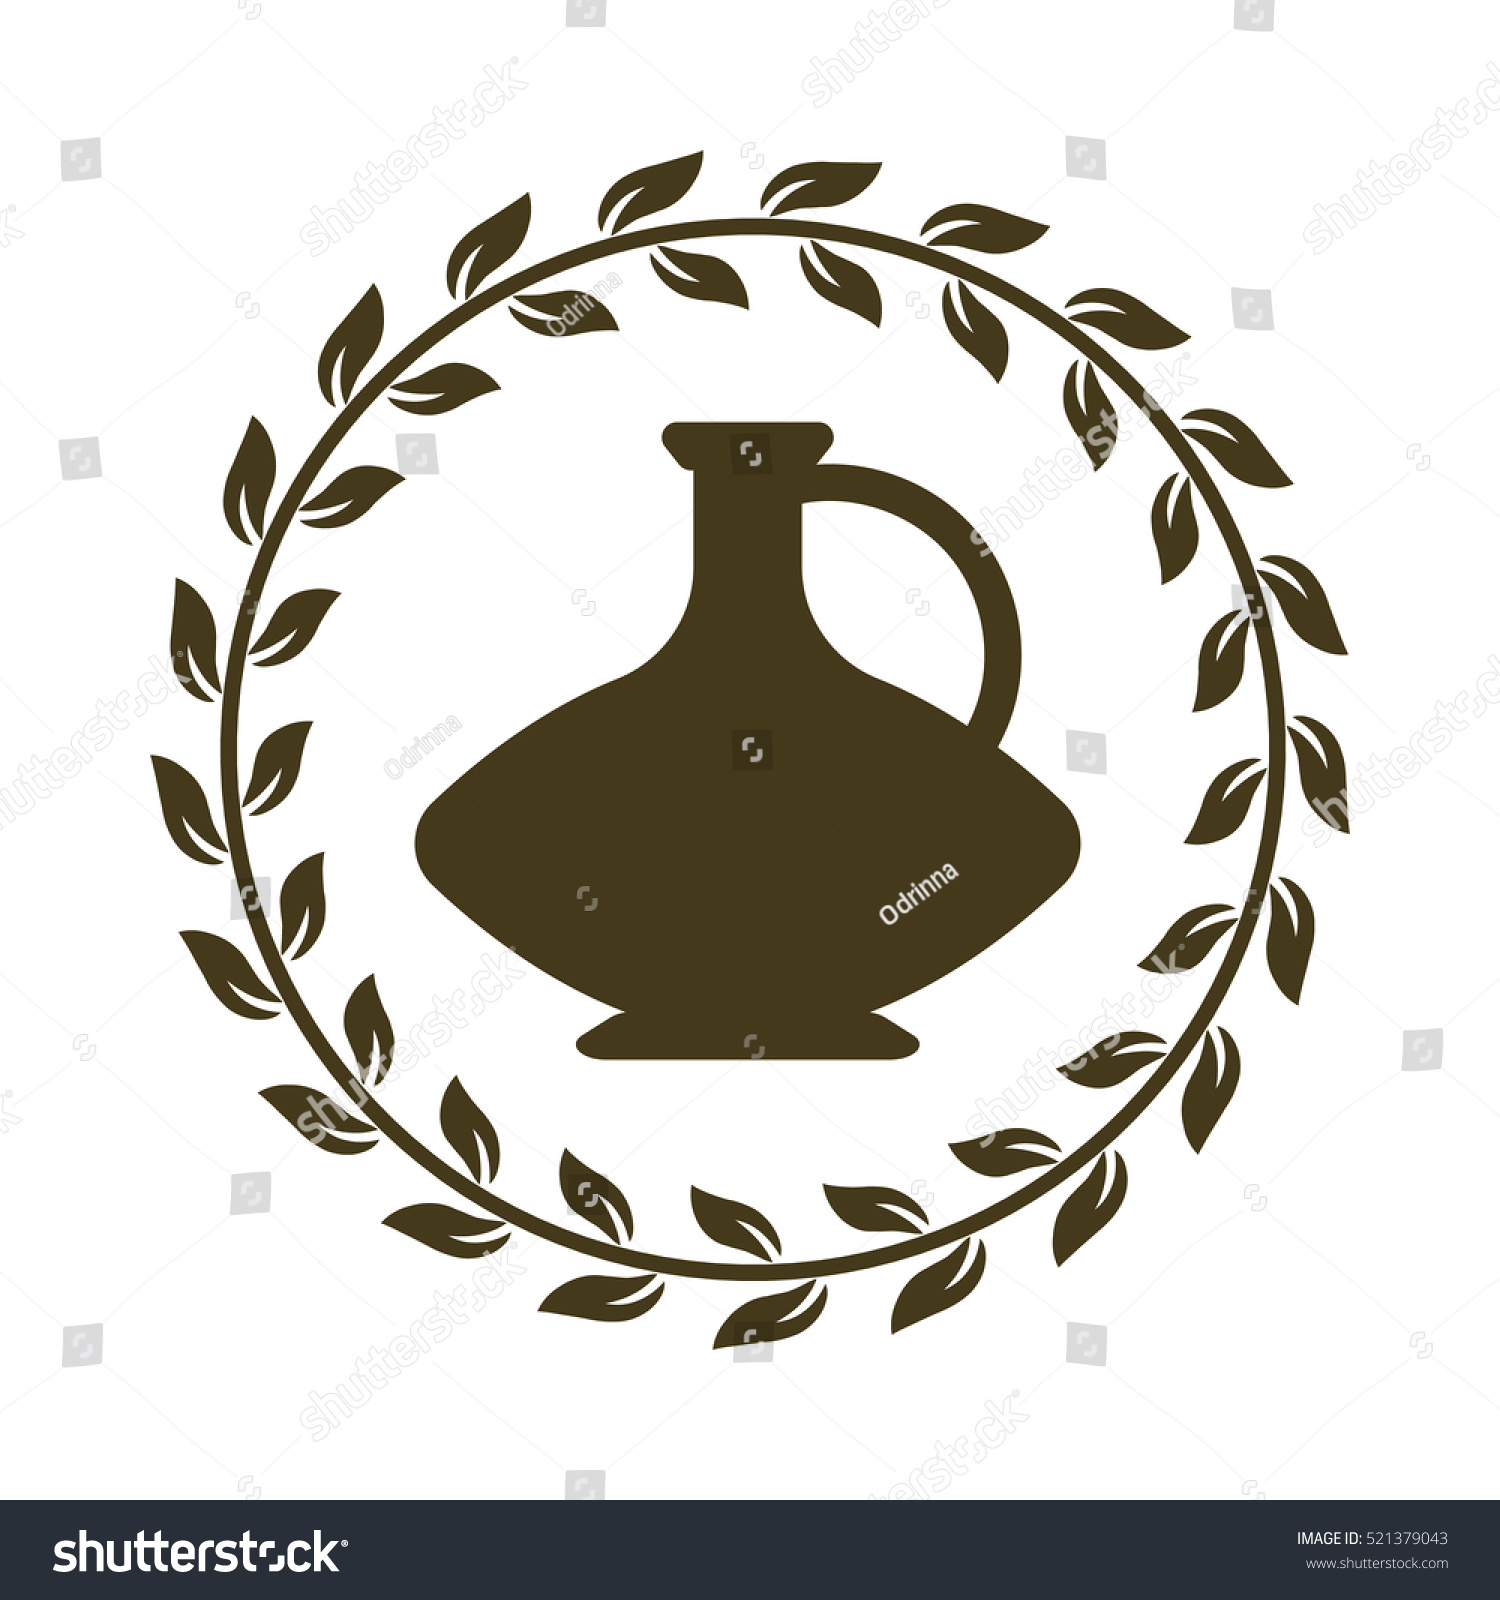 Ancient logo jug olive leaves greek stock vector 521379043 ancient logo with jug and olive leaves greek vase with olive oil or wine isolated reviewsmspy